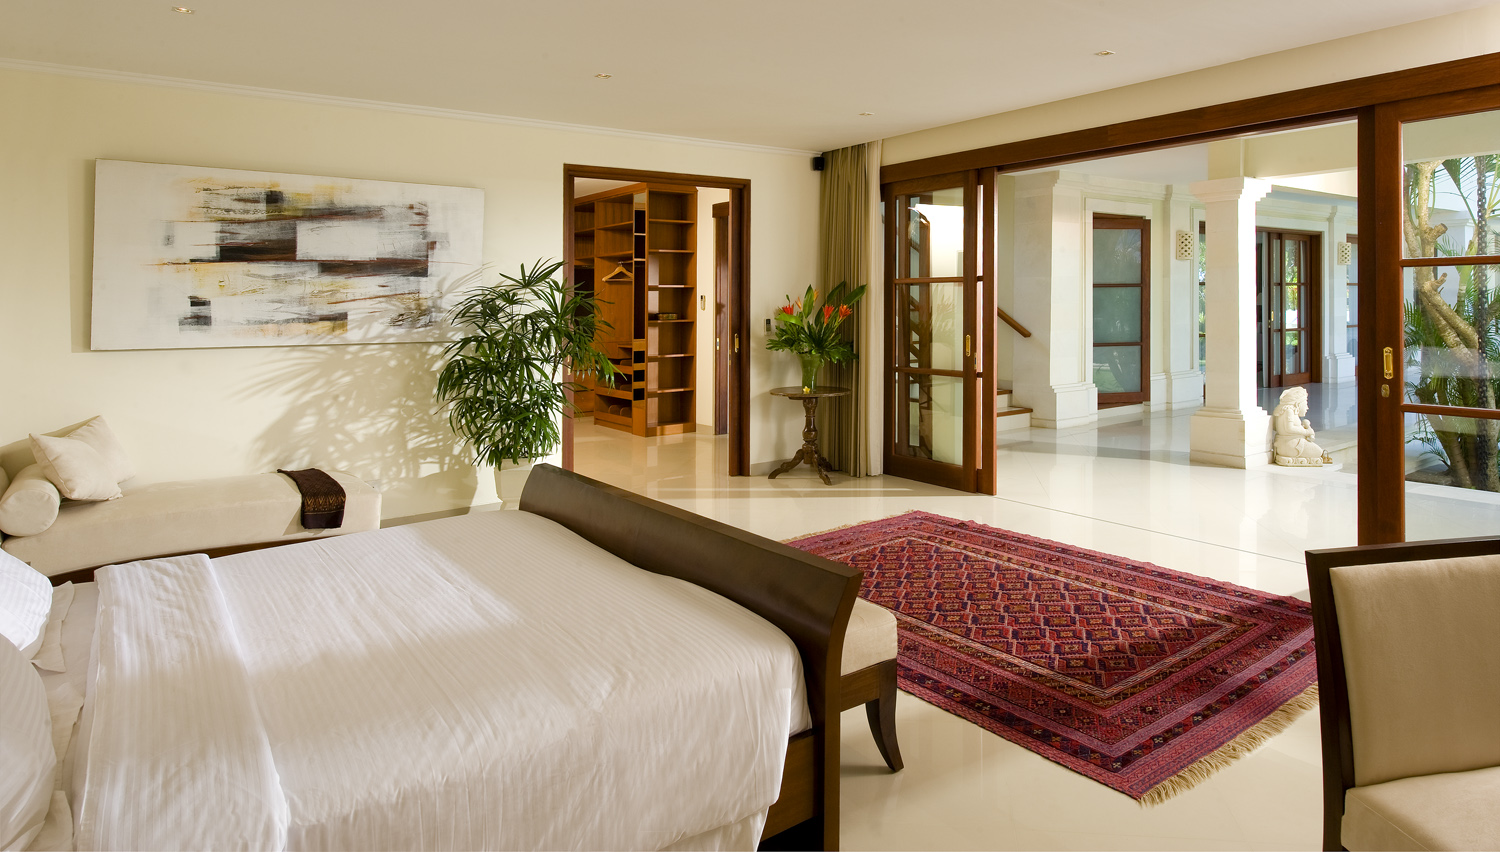 Taman Sorga - Guest wing downstairs master bedroom and dressing room